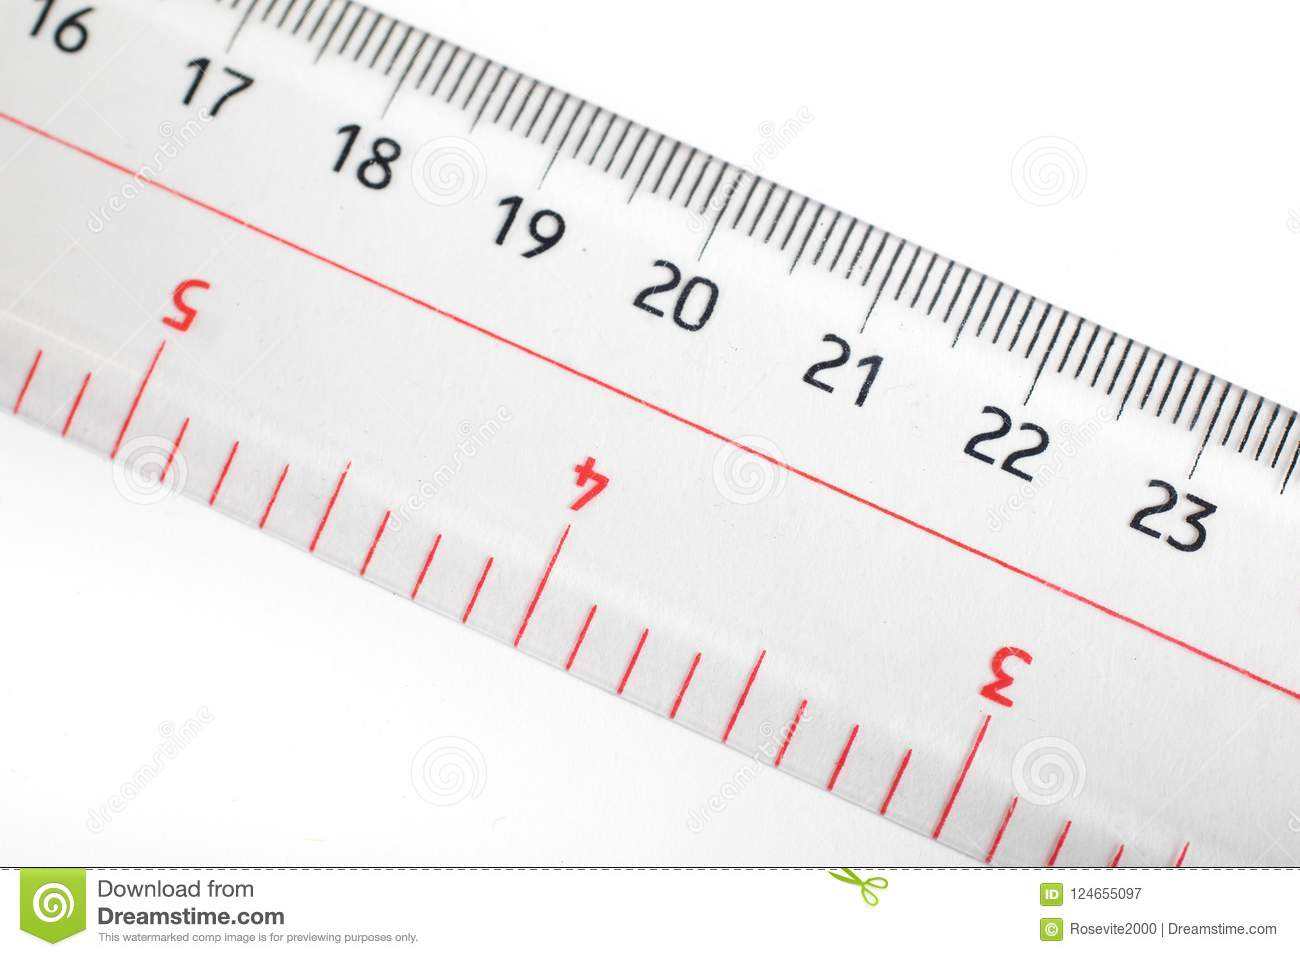 Top 100 Picture Of A Ruler In Inches